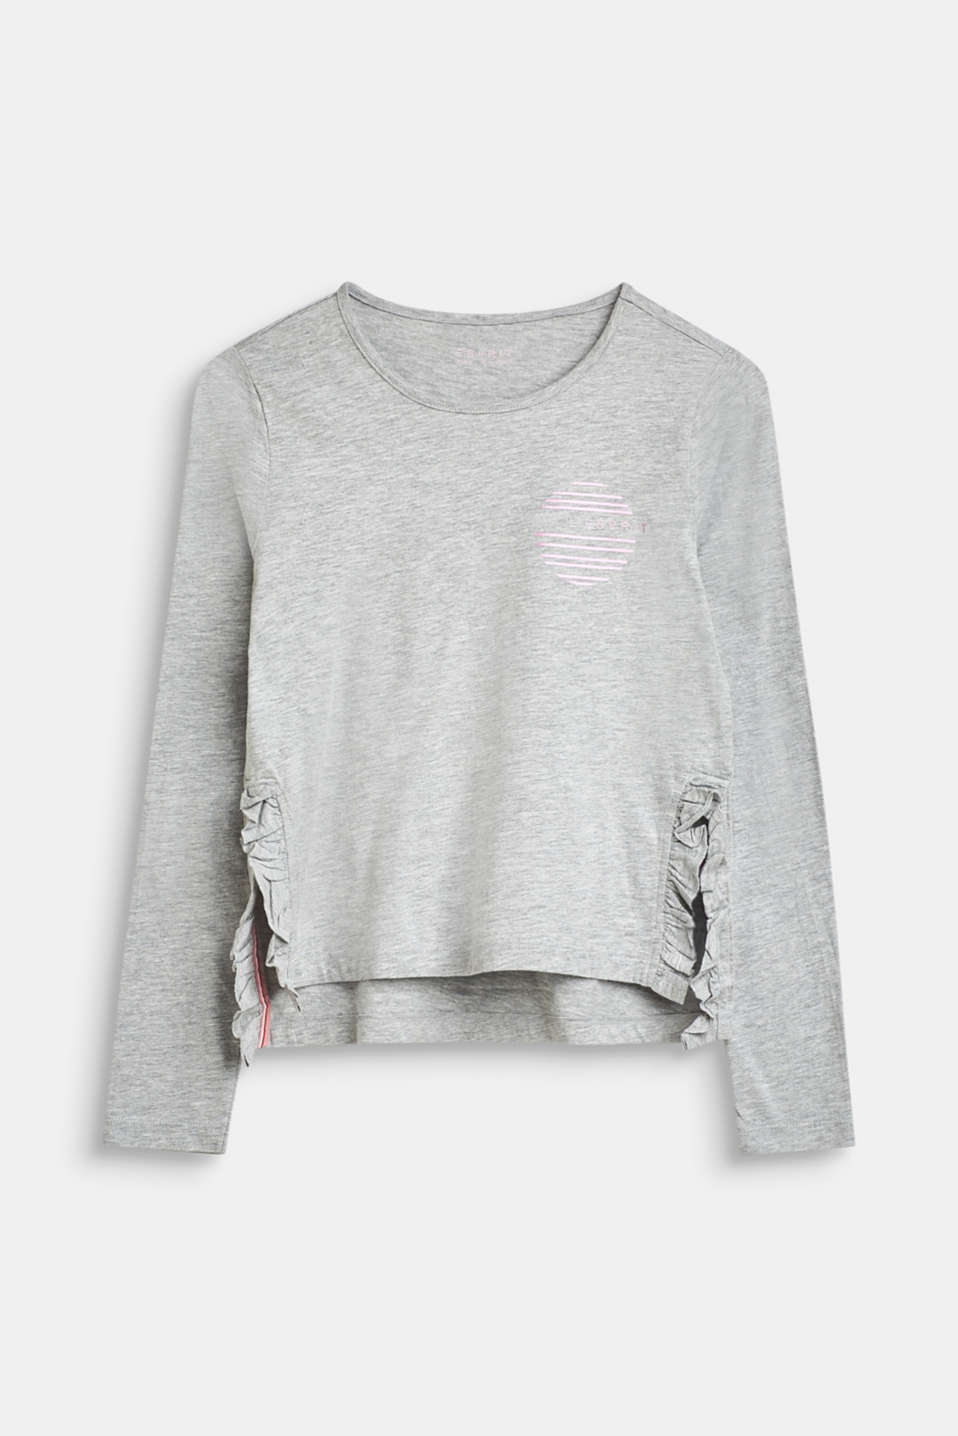 Esprit - Long sleeve top with a logo print and frill details